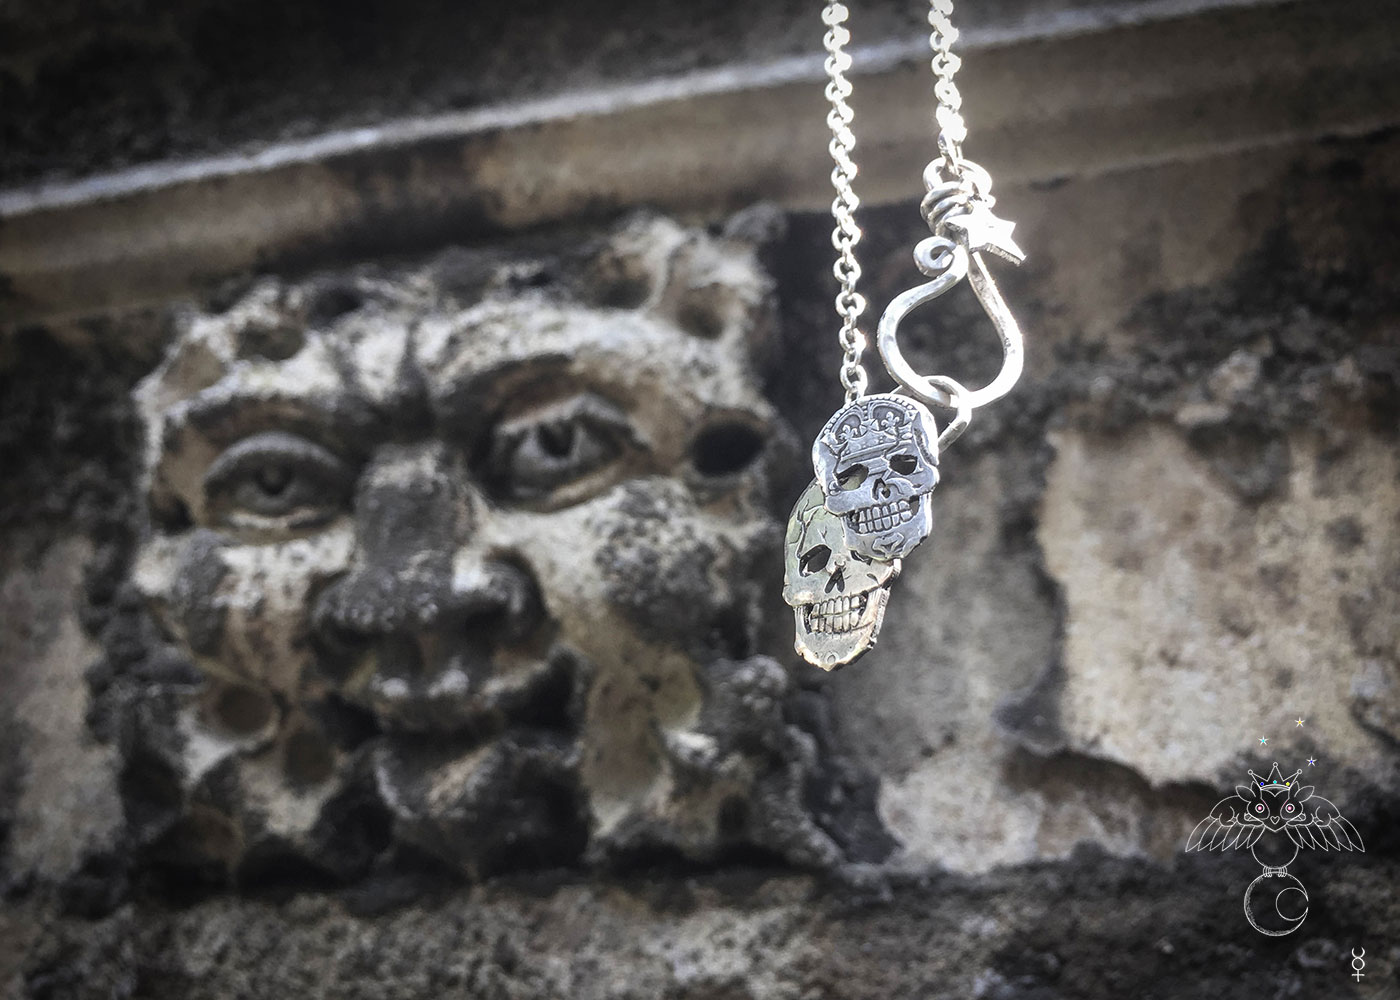 skull necklace handmade coin jewellery. Independent jeweller artisan studio creating ethical jewellery